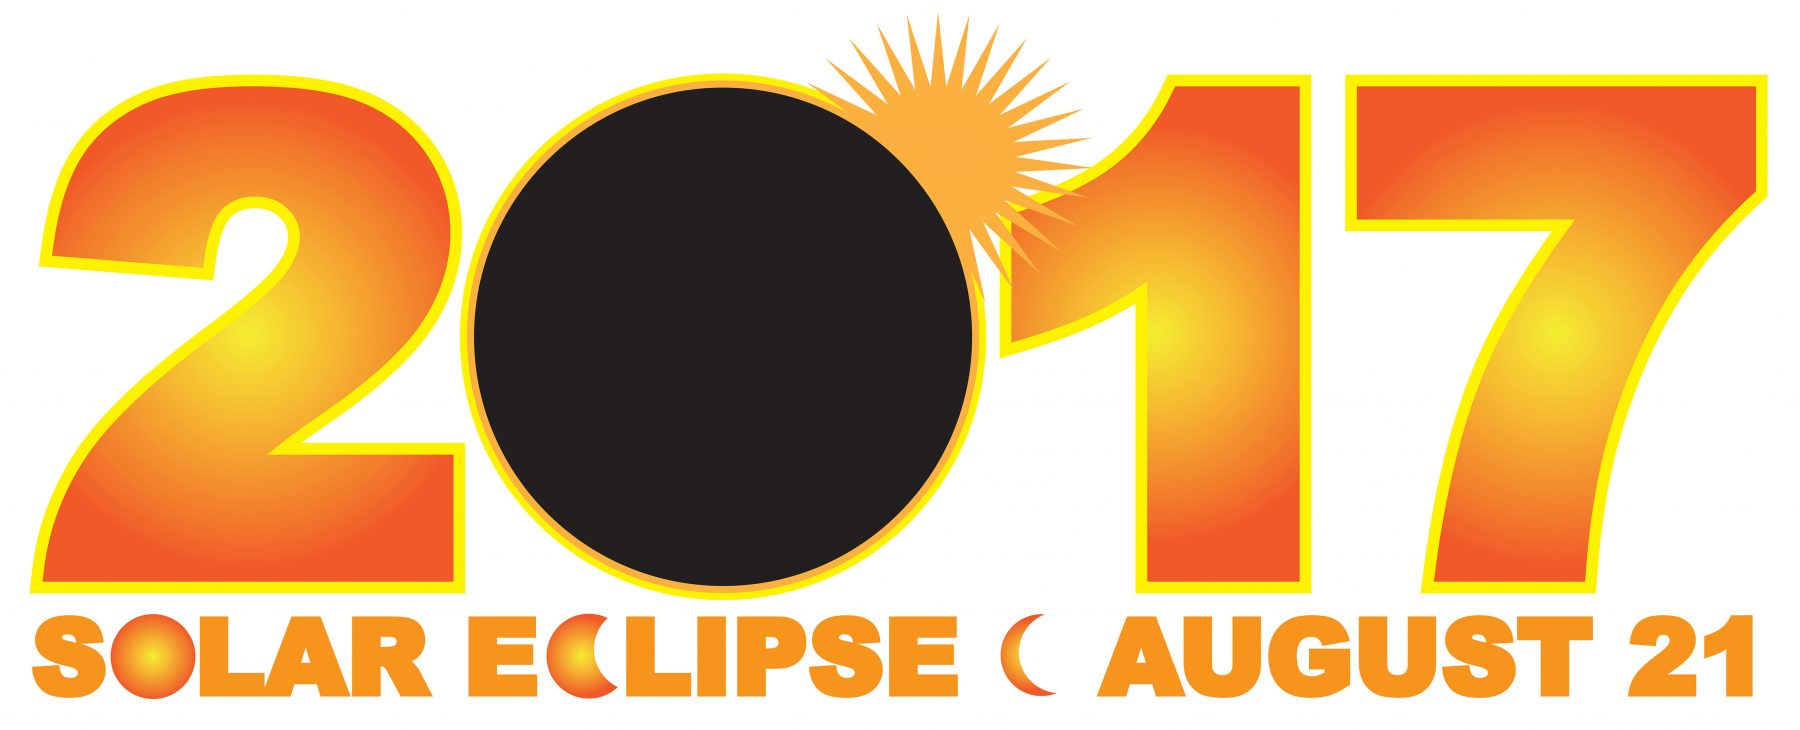 1800x730 How To Safely View The August 21st Solar Eclipse State Street Eye